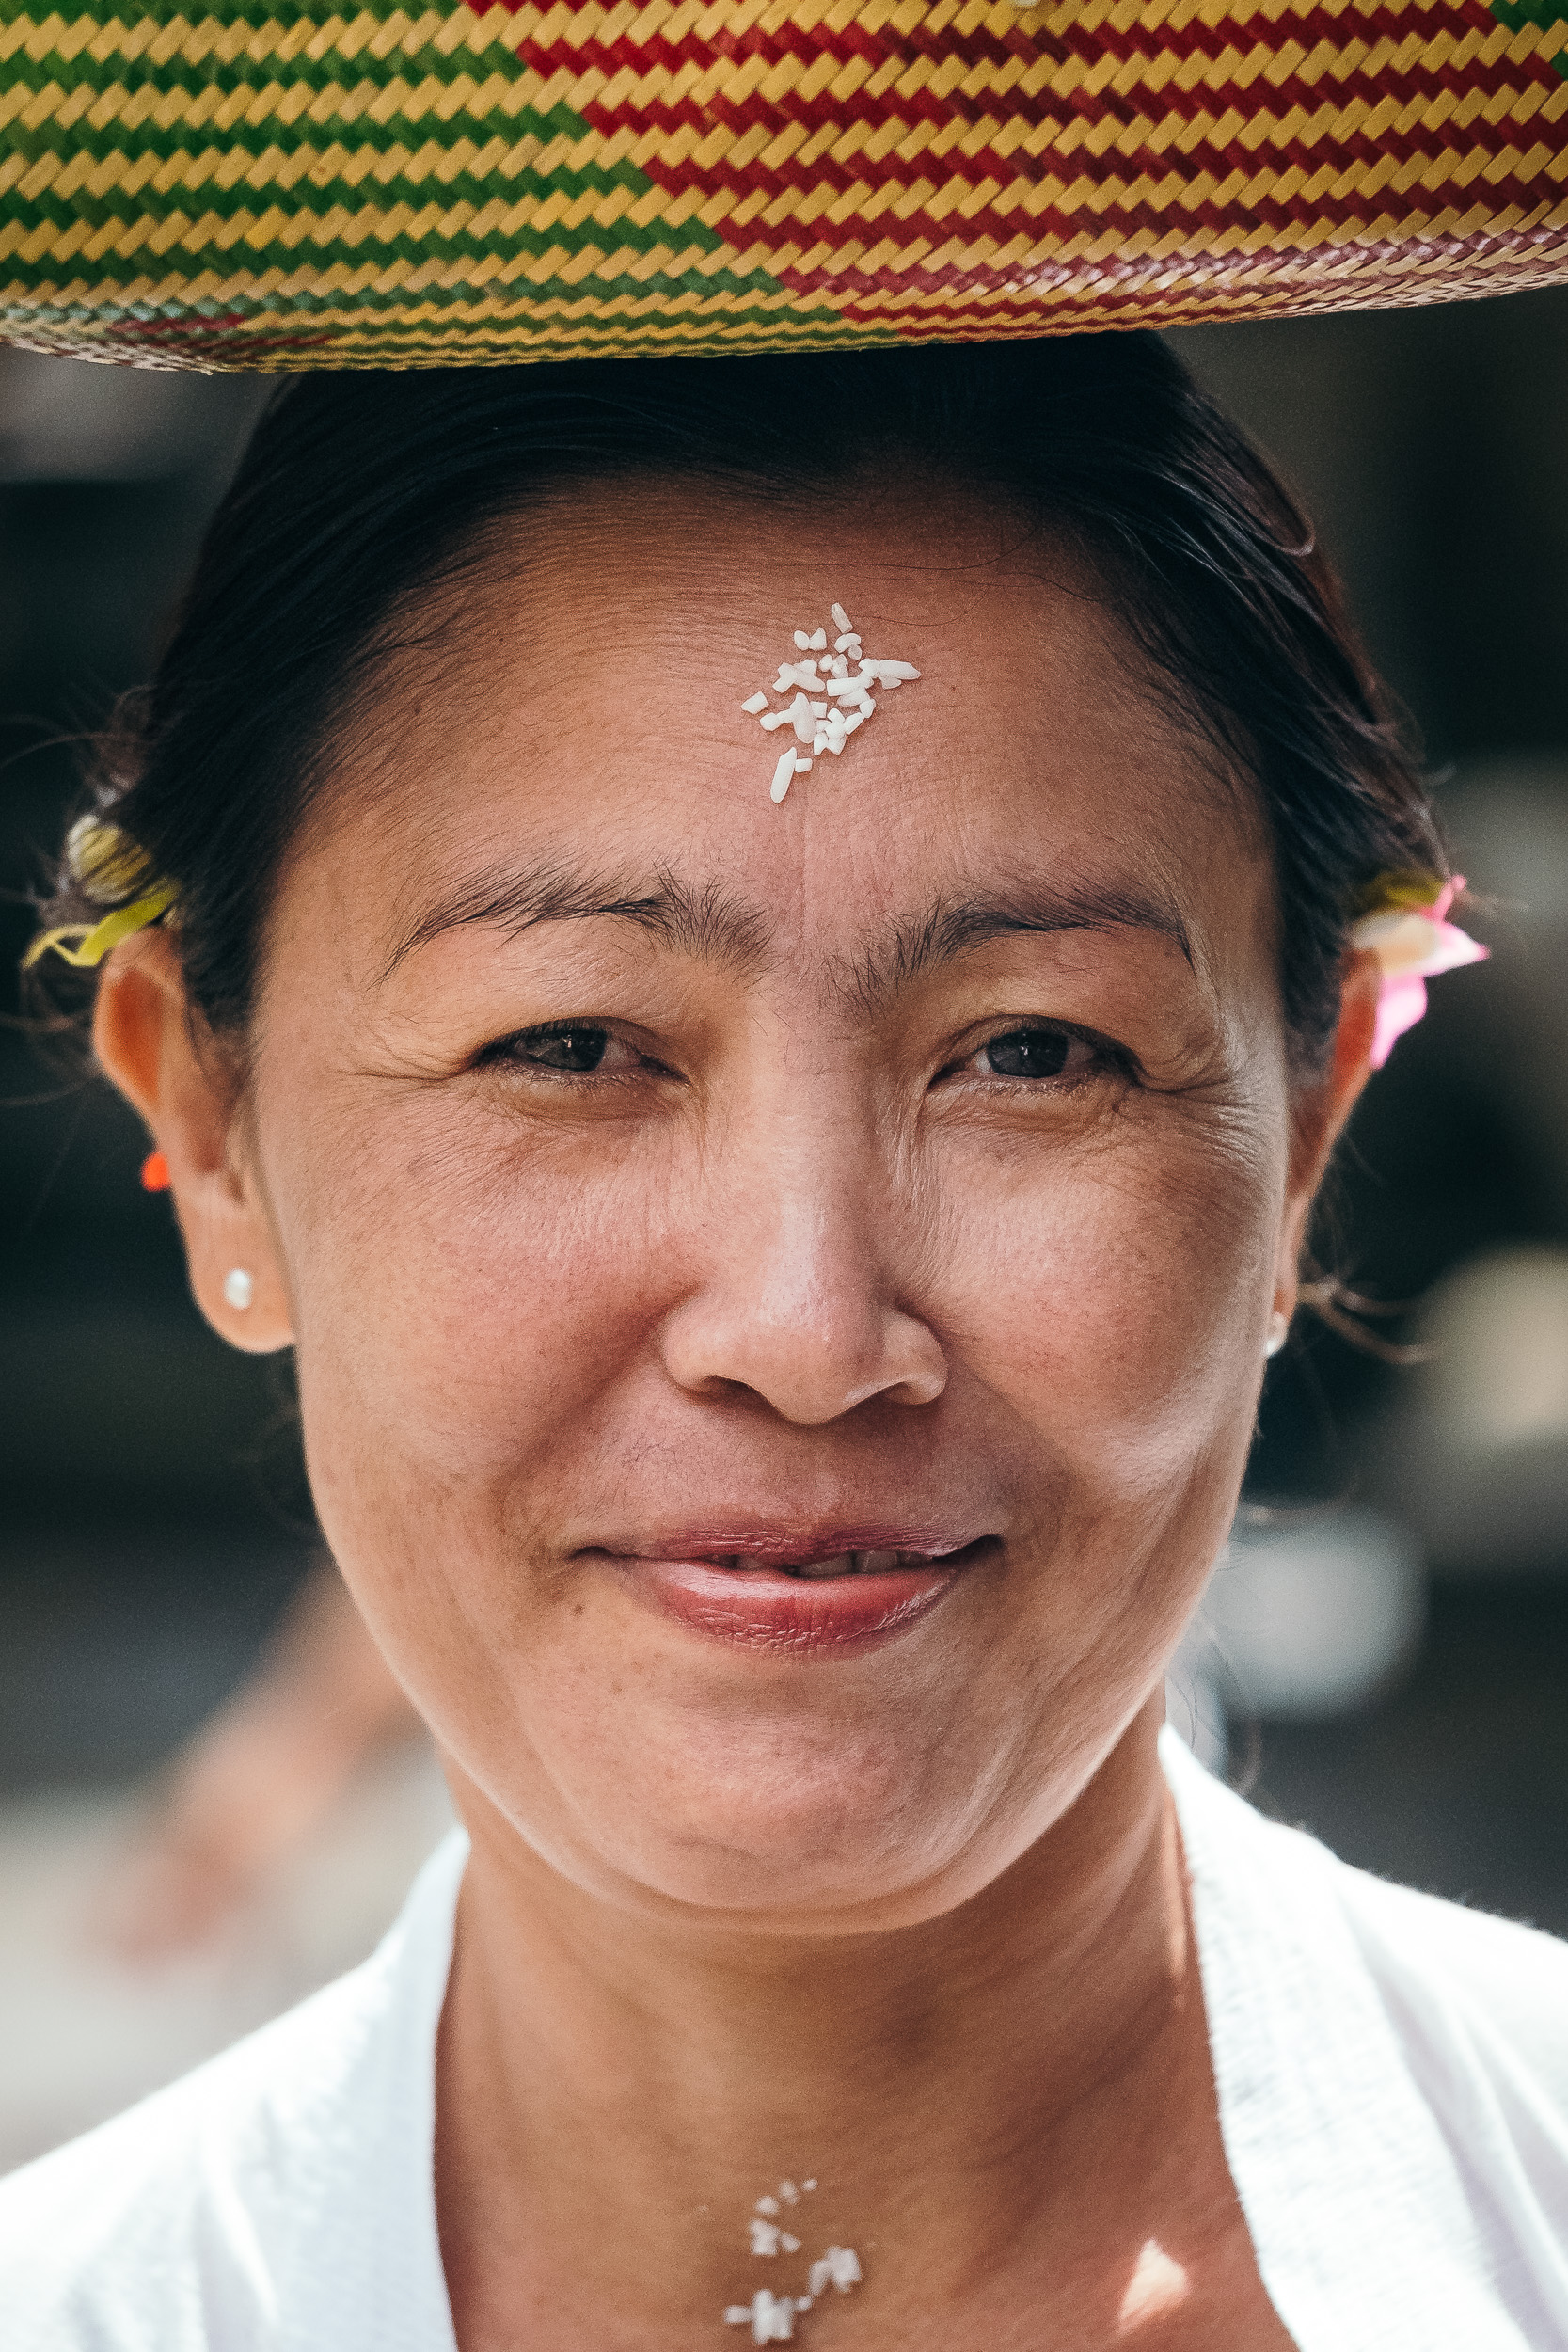 Balinese woman in traditional dress in Tirta Empul Temple in Bali, Indonesia.  Fujifilm X-T2 + Fujinon XF 80mm f/2.8 R LM WR OIS Macro